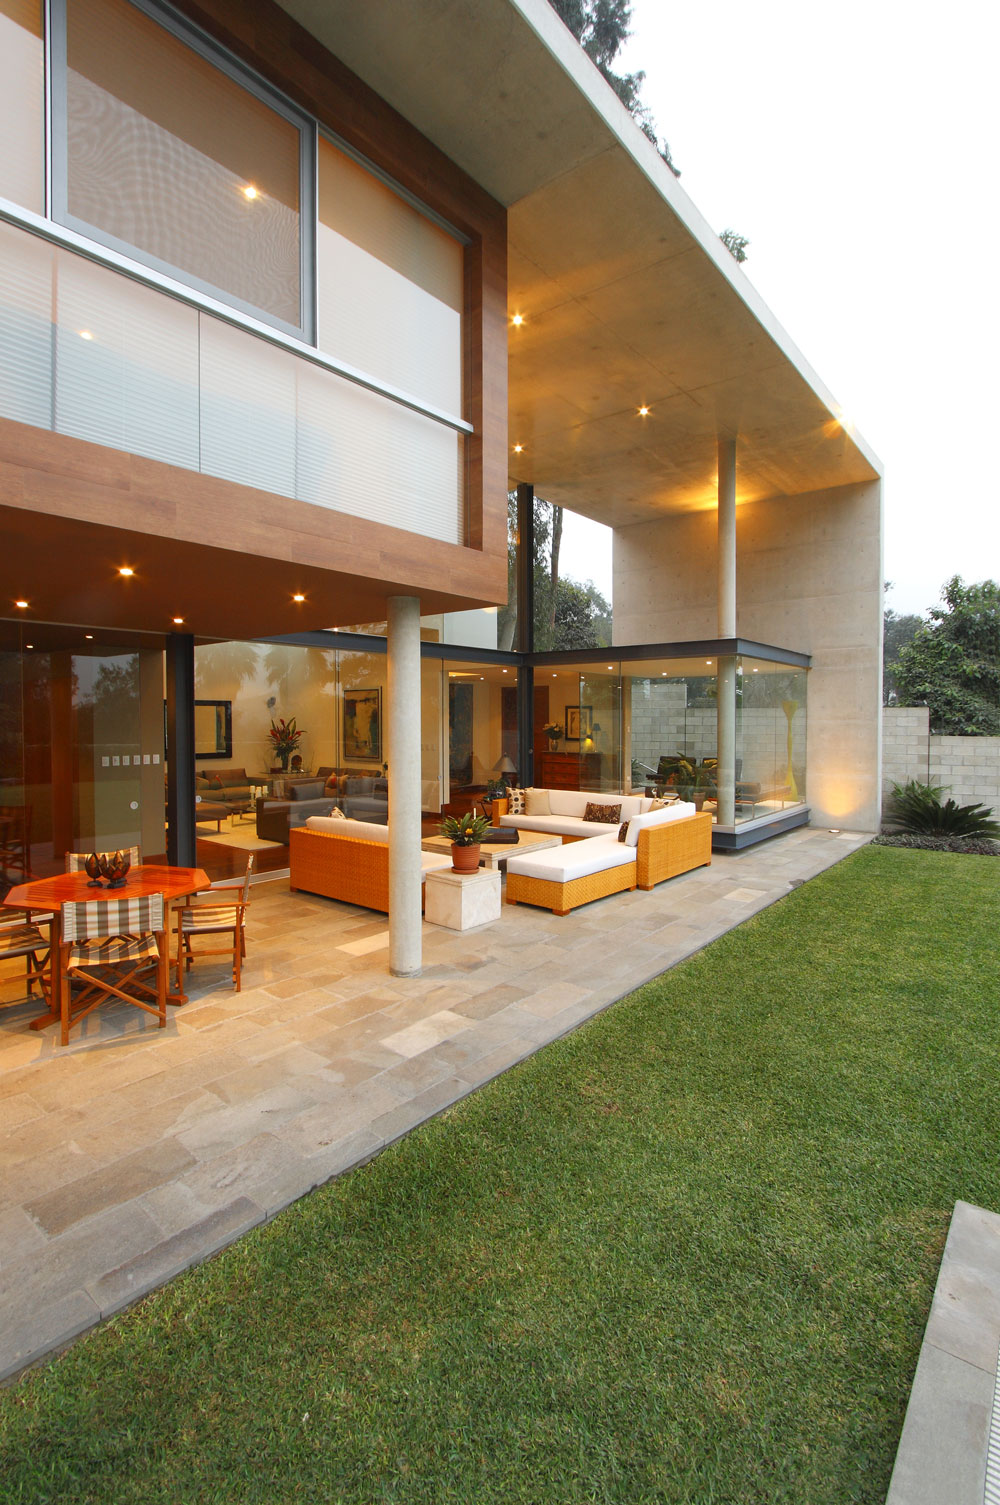 Terrace, Outdoor Furniture, Family Home in Lima, Peru